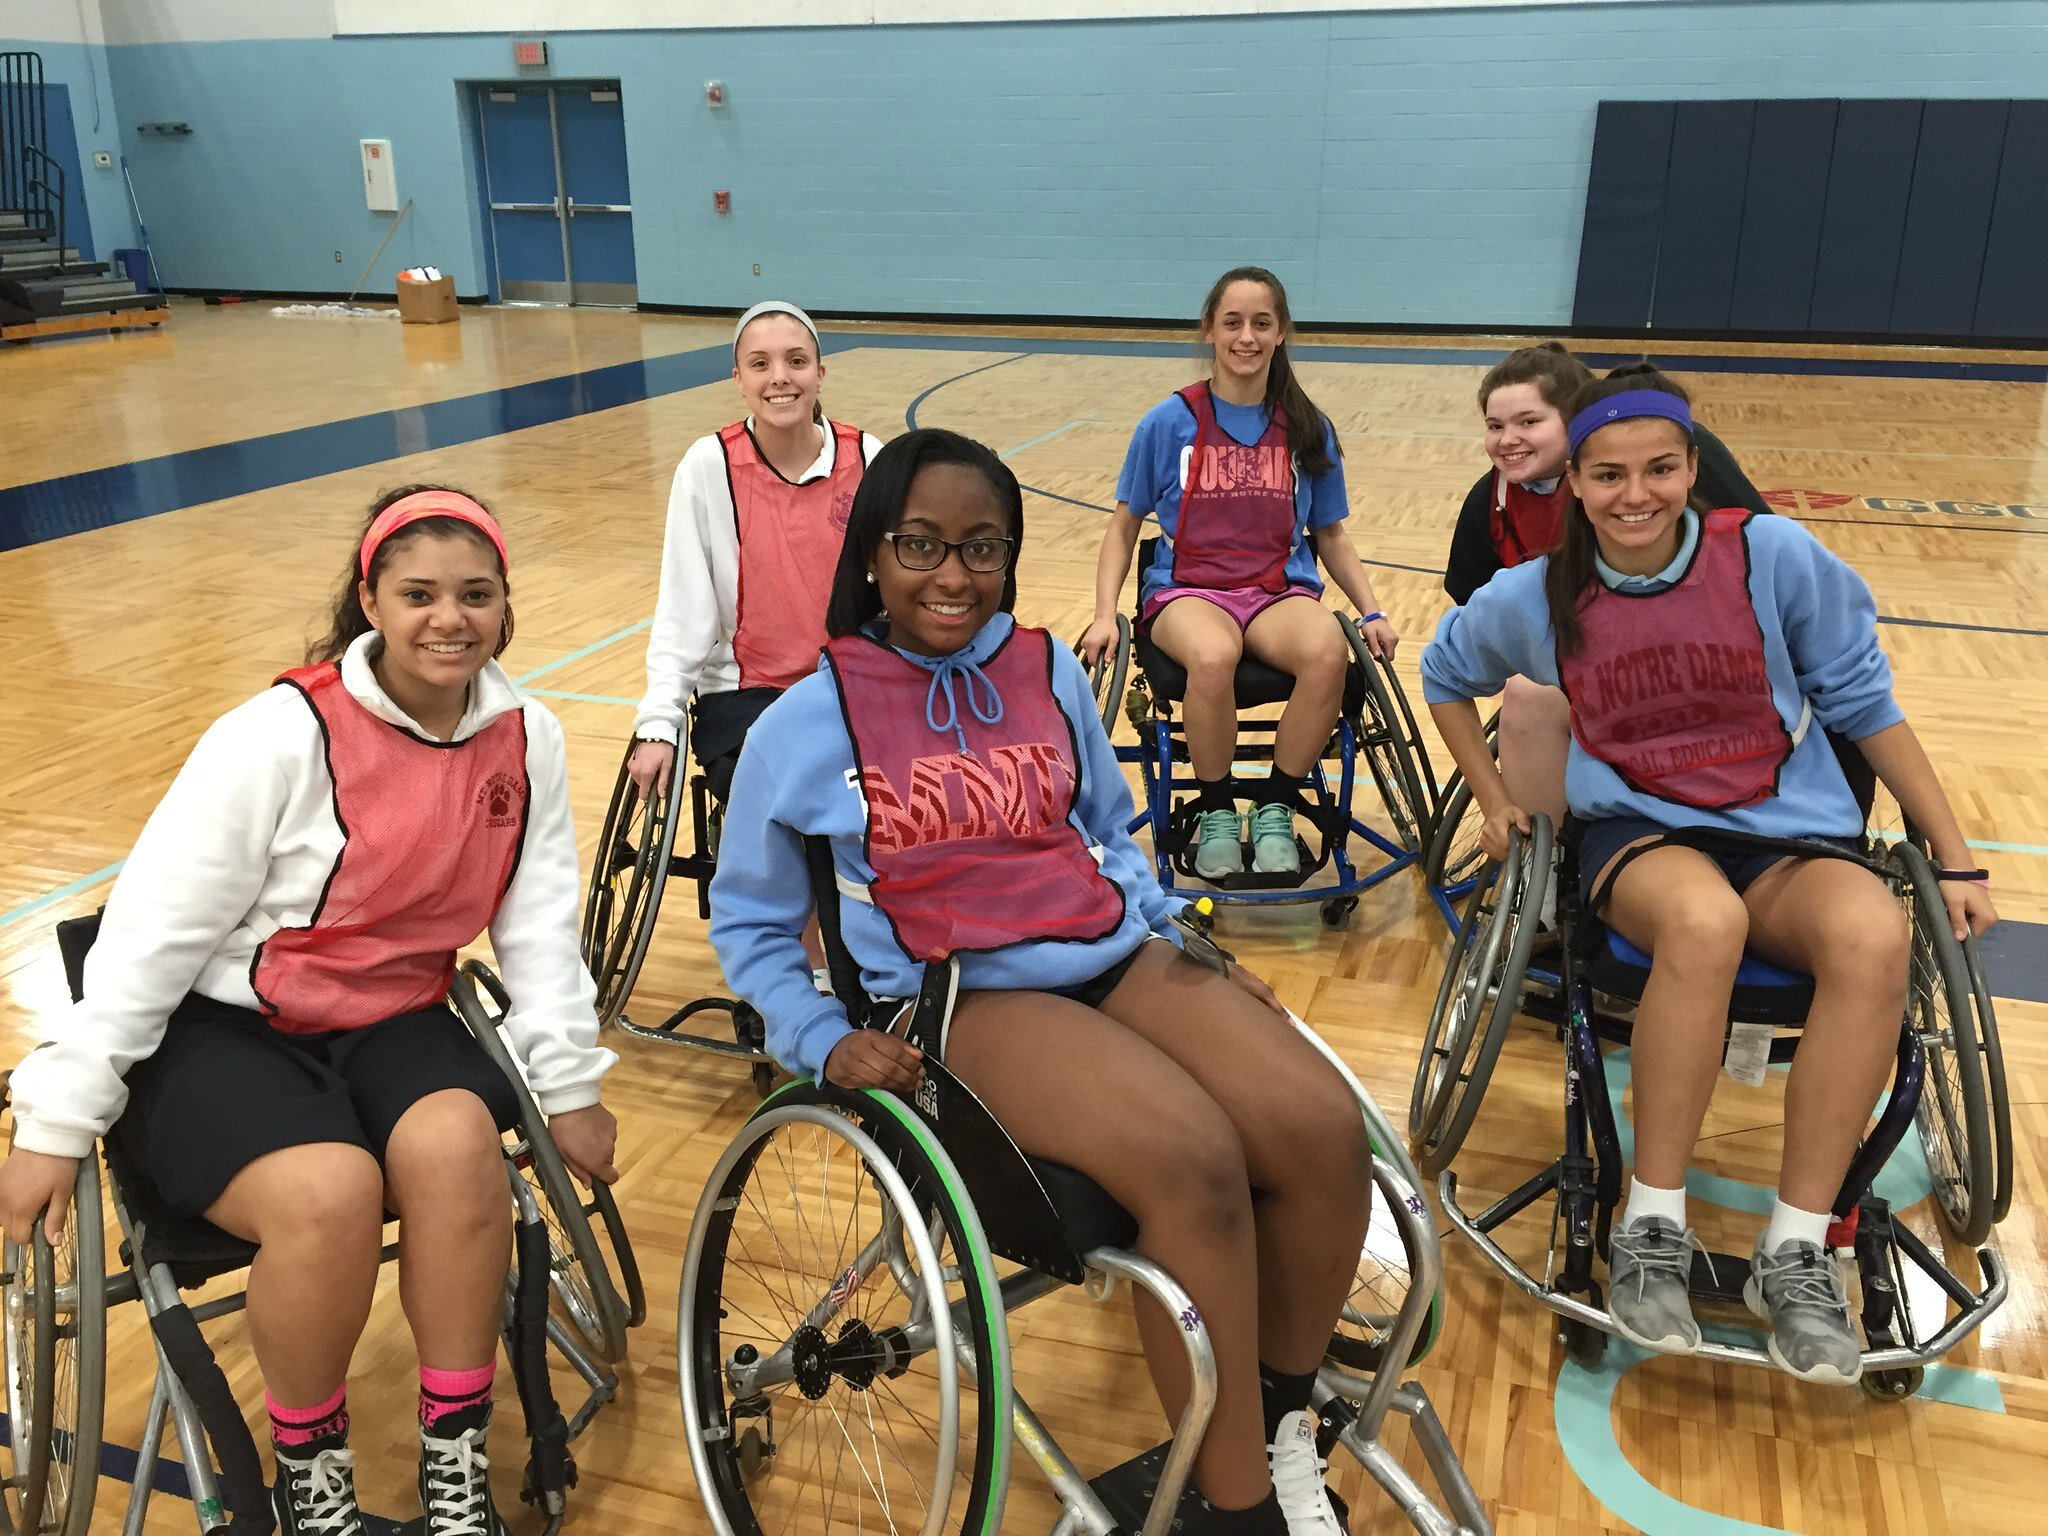 B-ball with a purpose! - This program is a great follow up to our Disability Awareness Presentation, or alone by itself. Your students get the opportunity to play a game of wheelchair basketball - meanwhile learning about the commonalities we all share, regardless of different abilities.